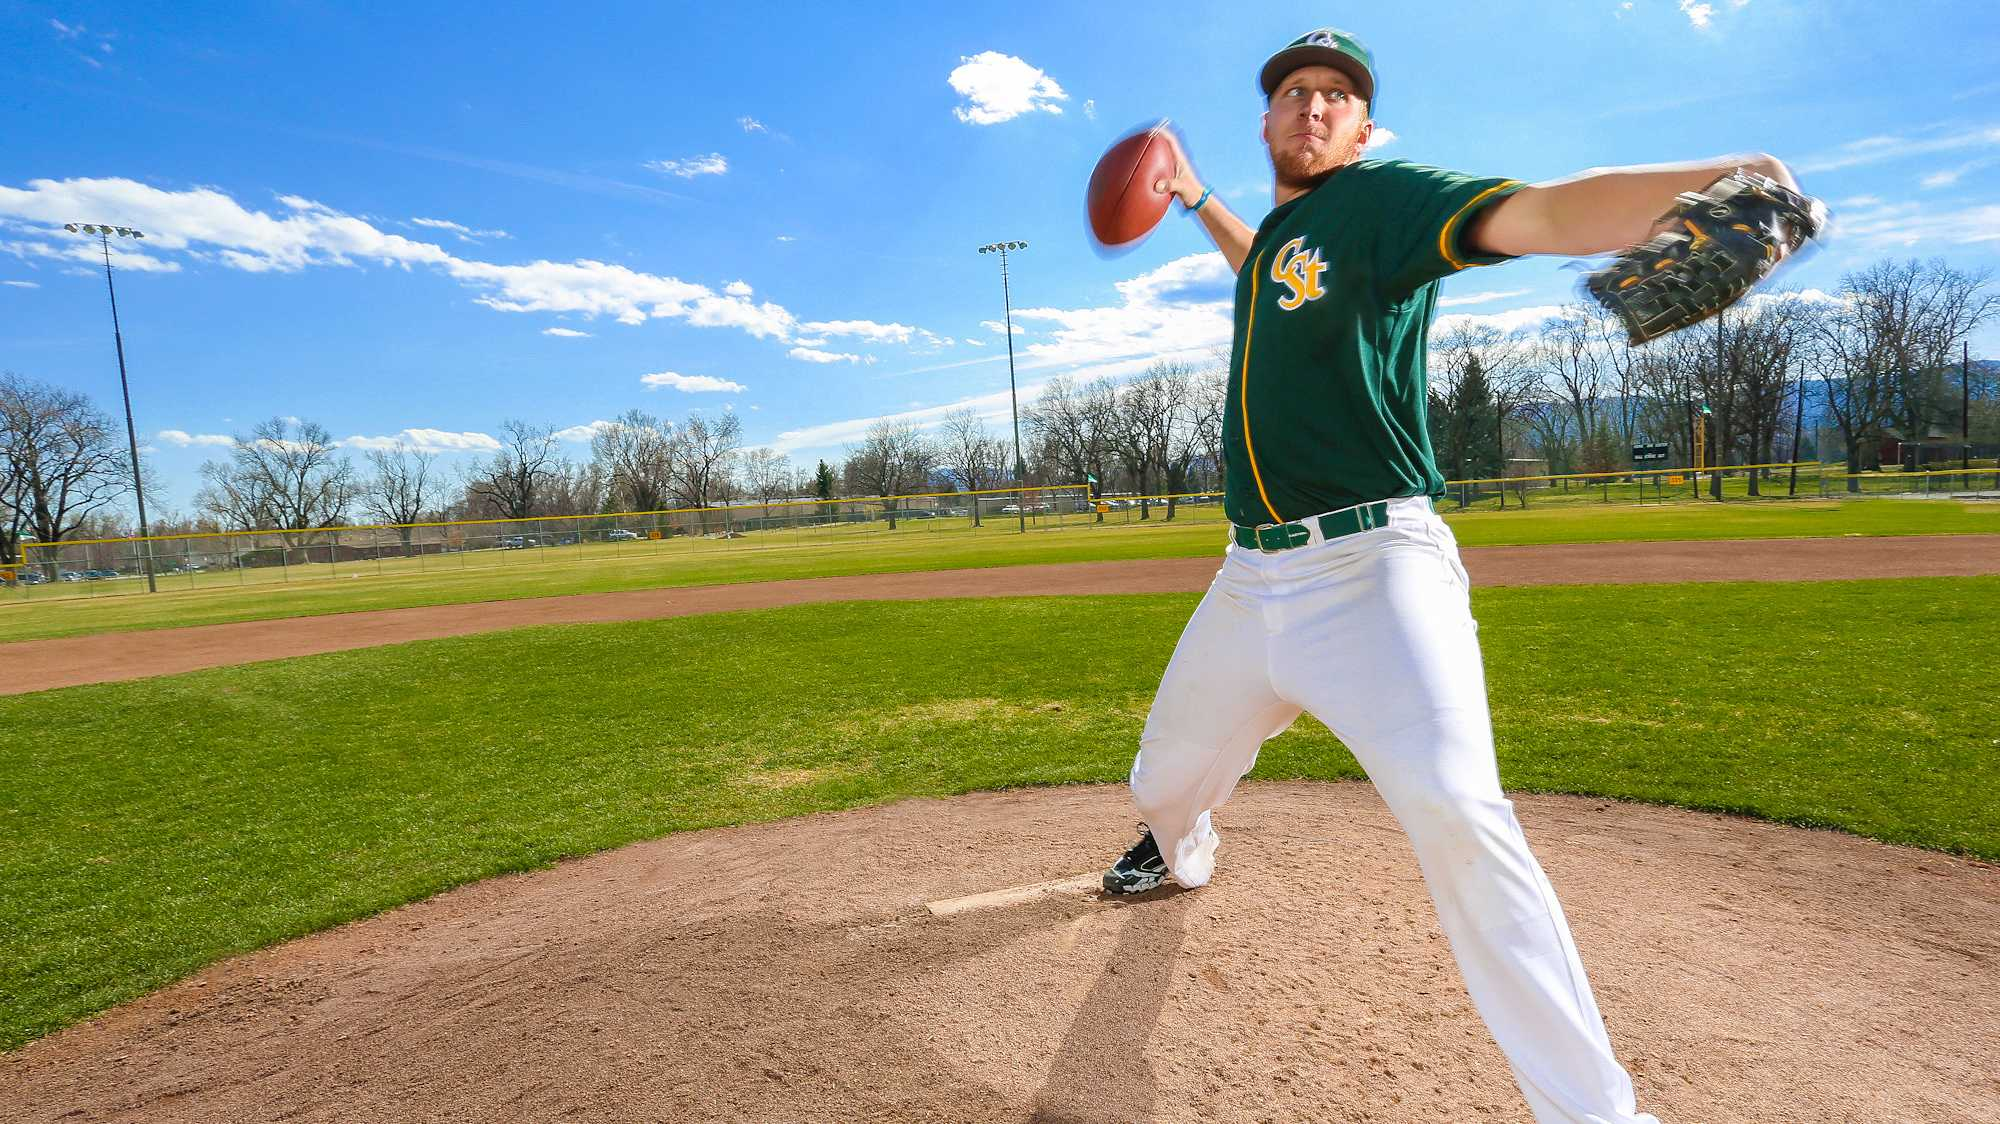 MJ McPeek now using arm strength on pitching mound for CSU baseball